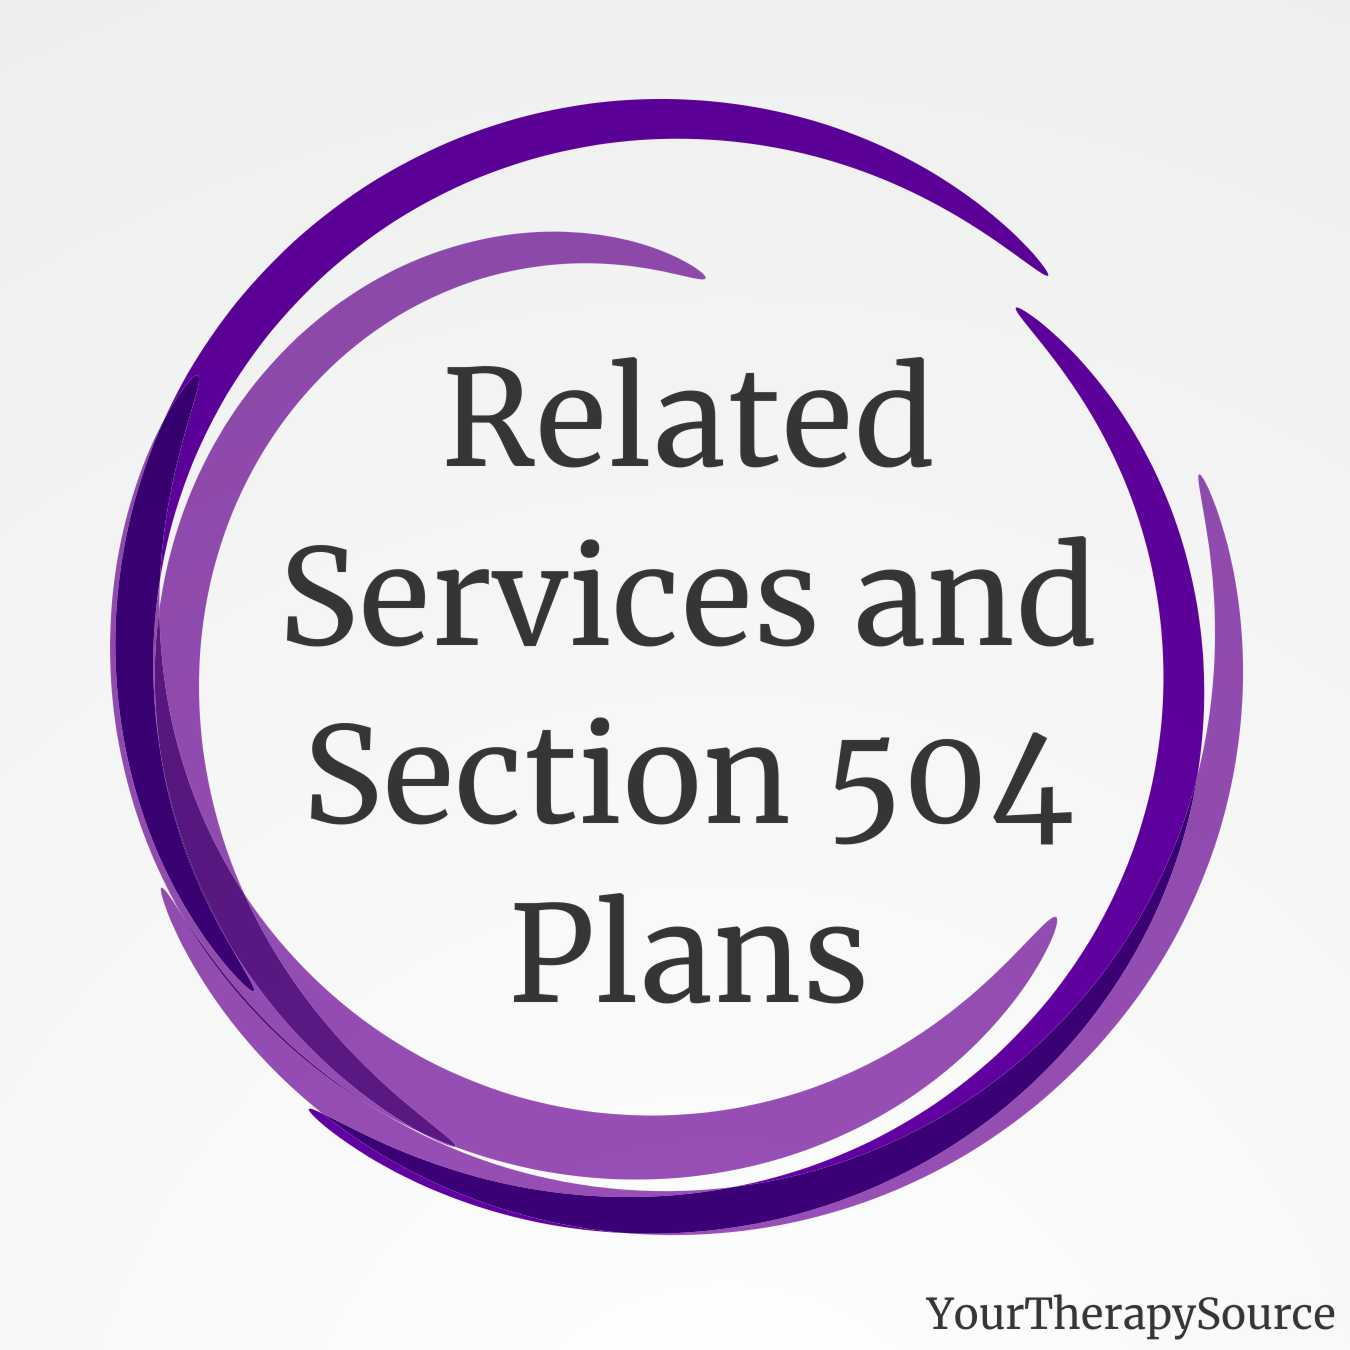 Related Services and Section 504 Plans Survey Results